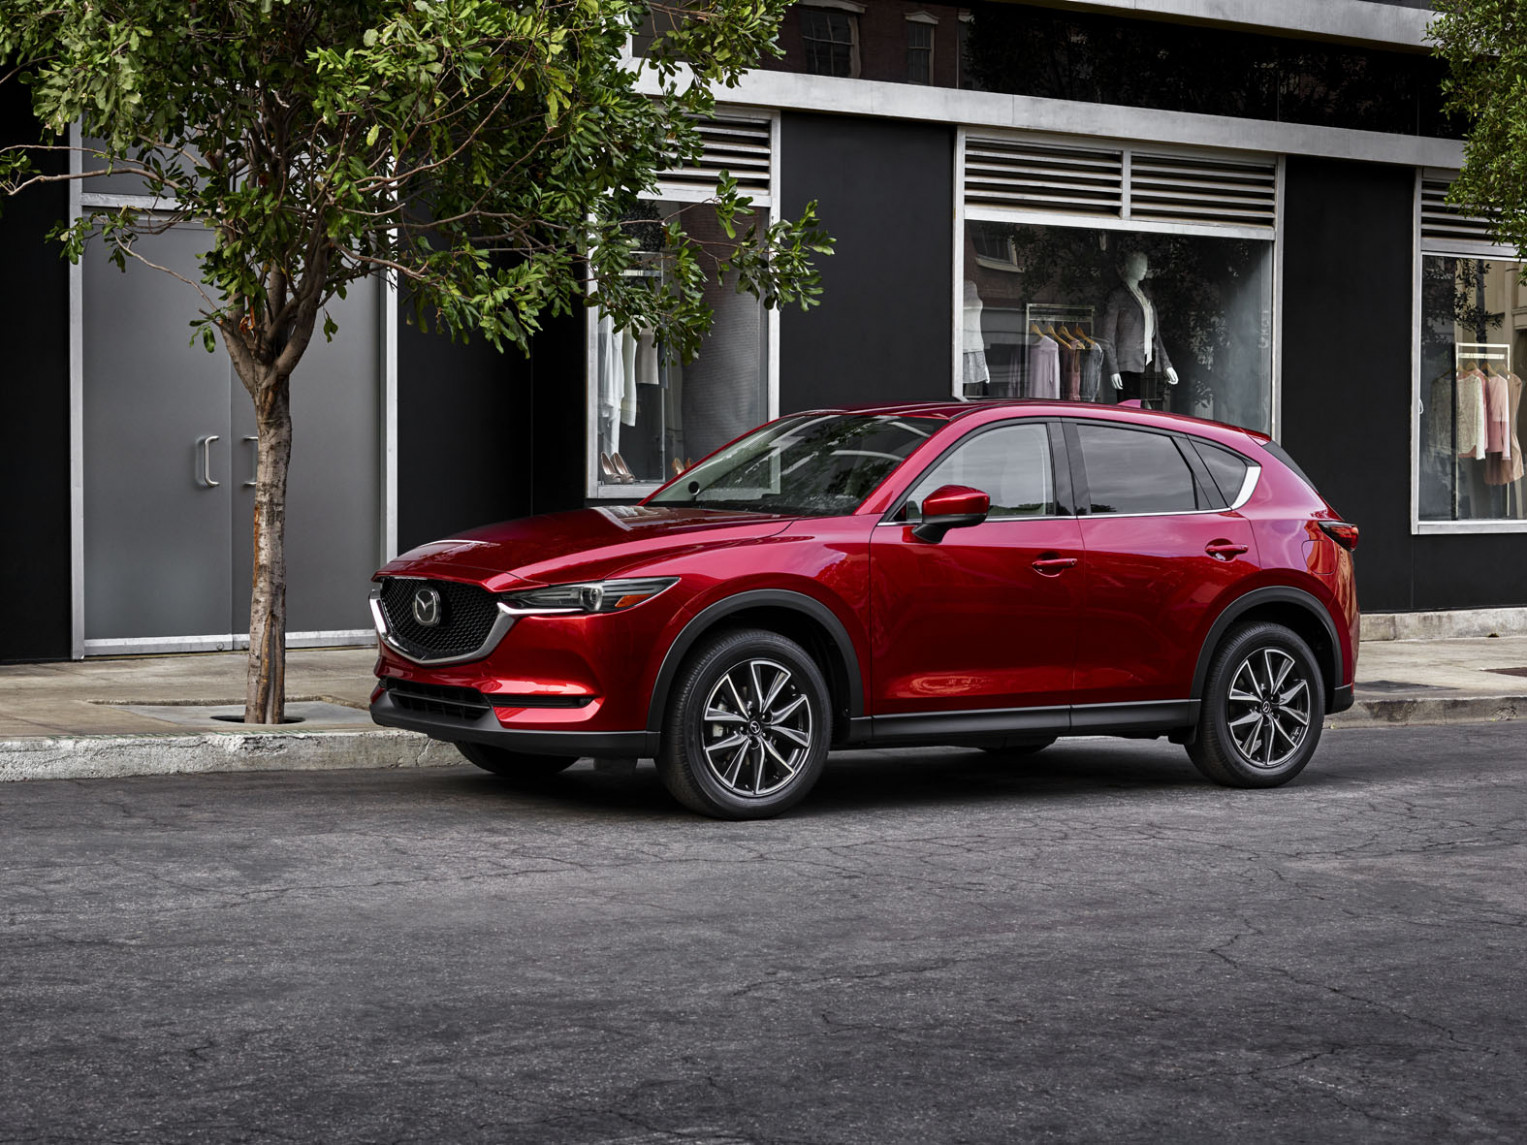 Redesign and Concept Mazda Cx5 Grand Touring Lx 2022